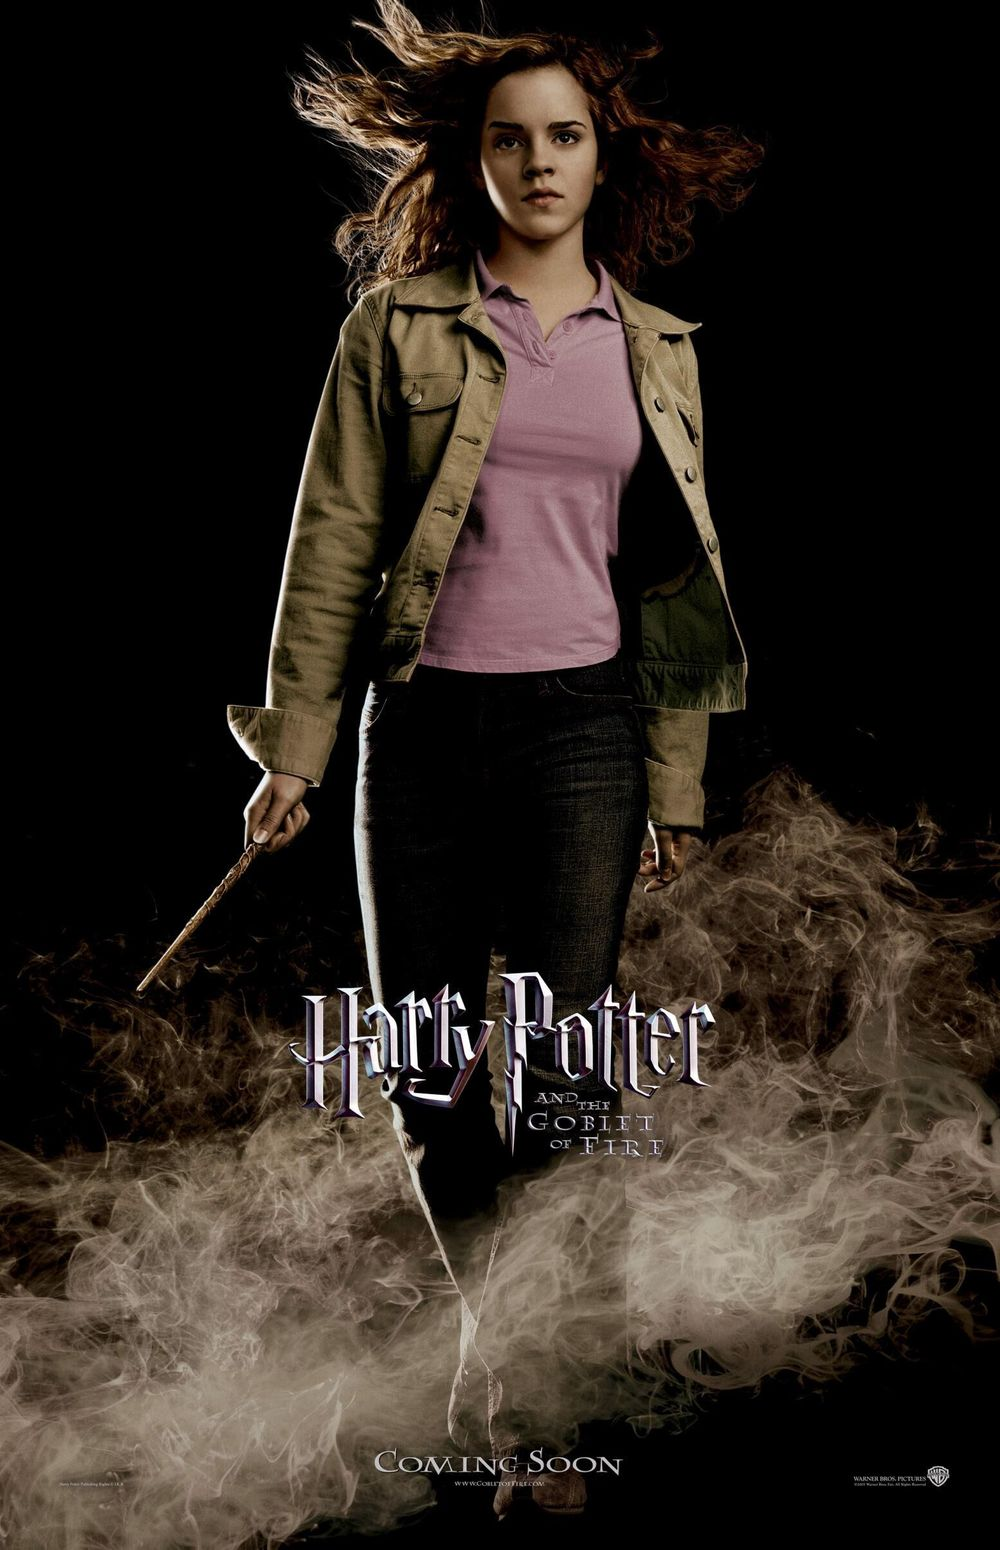 "<a href=""http://www.totallyemmawatson.com/gallery/acting-career/harry-potter-and-the-globet-of-fire/posters"">Posters</a>"